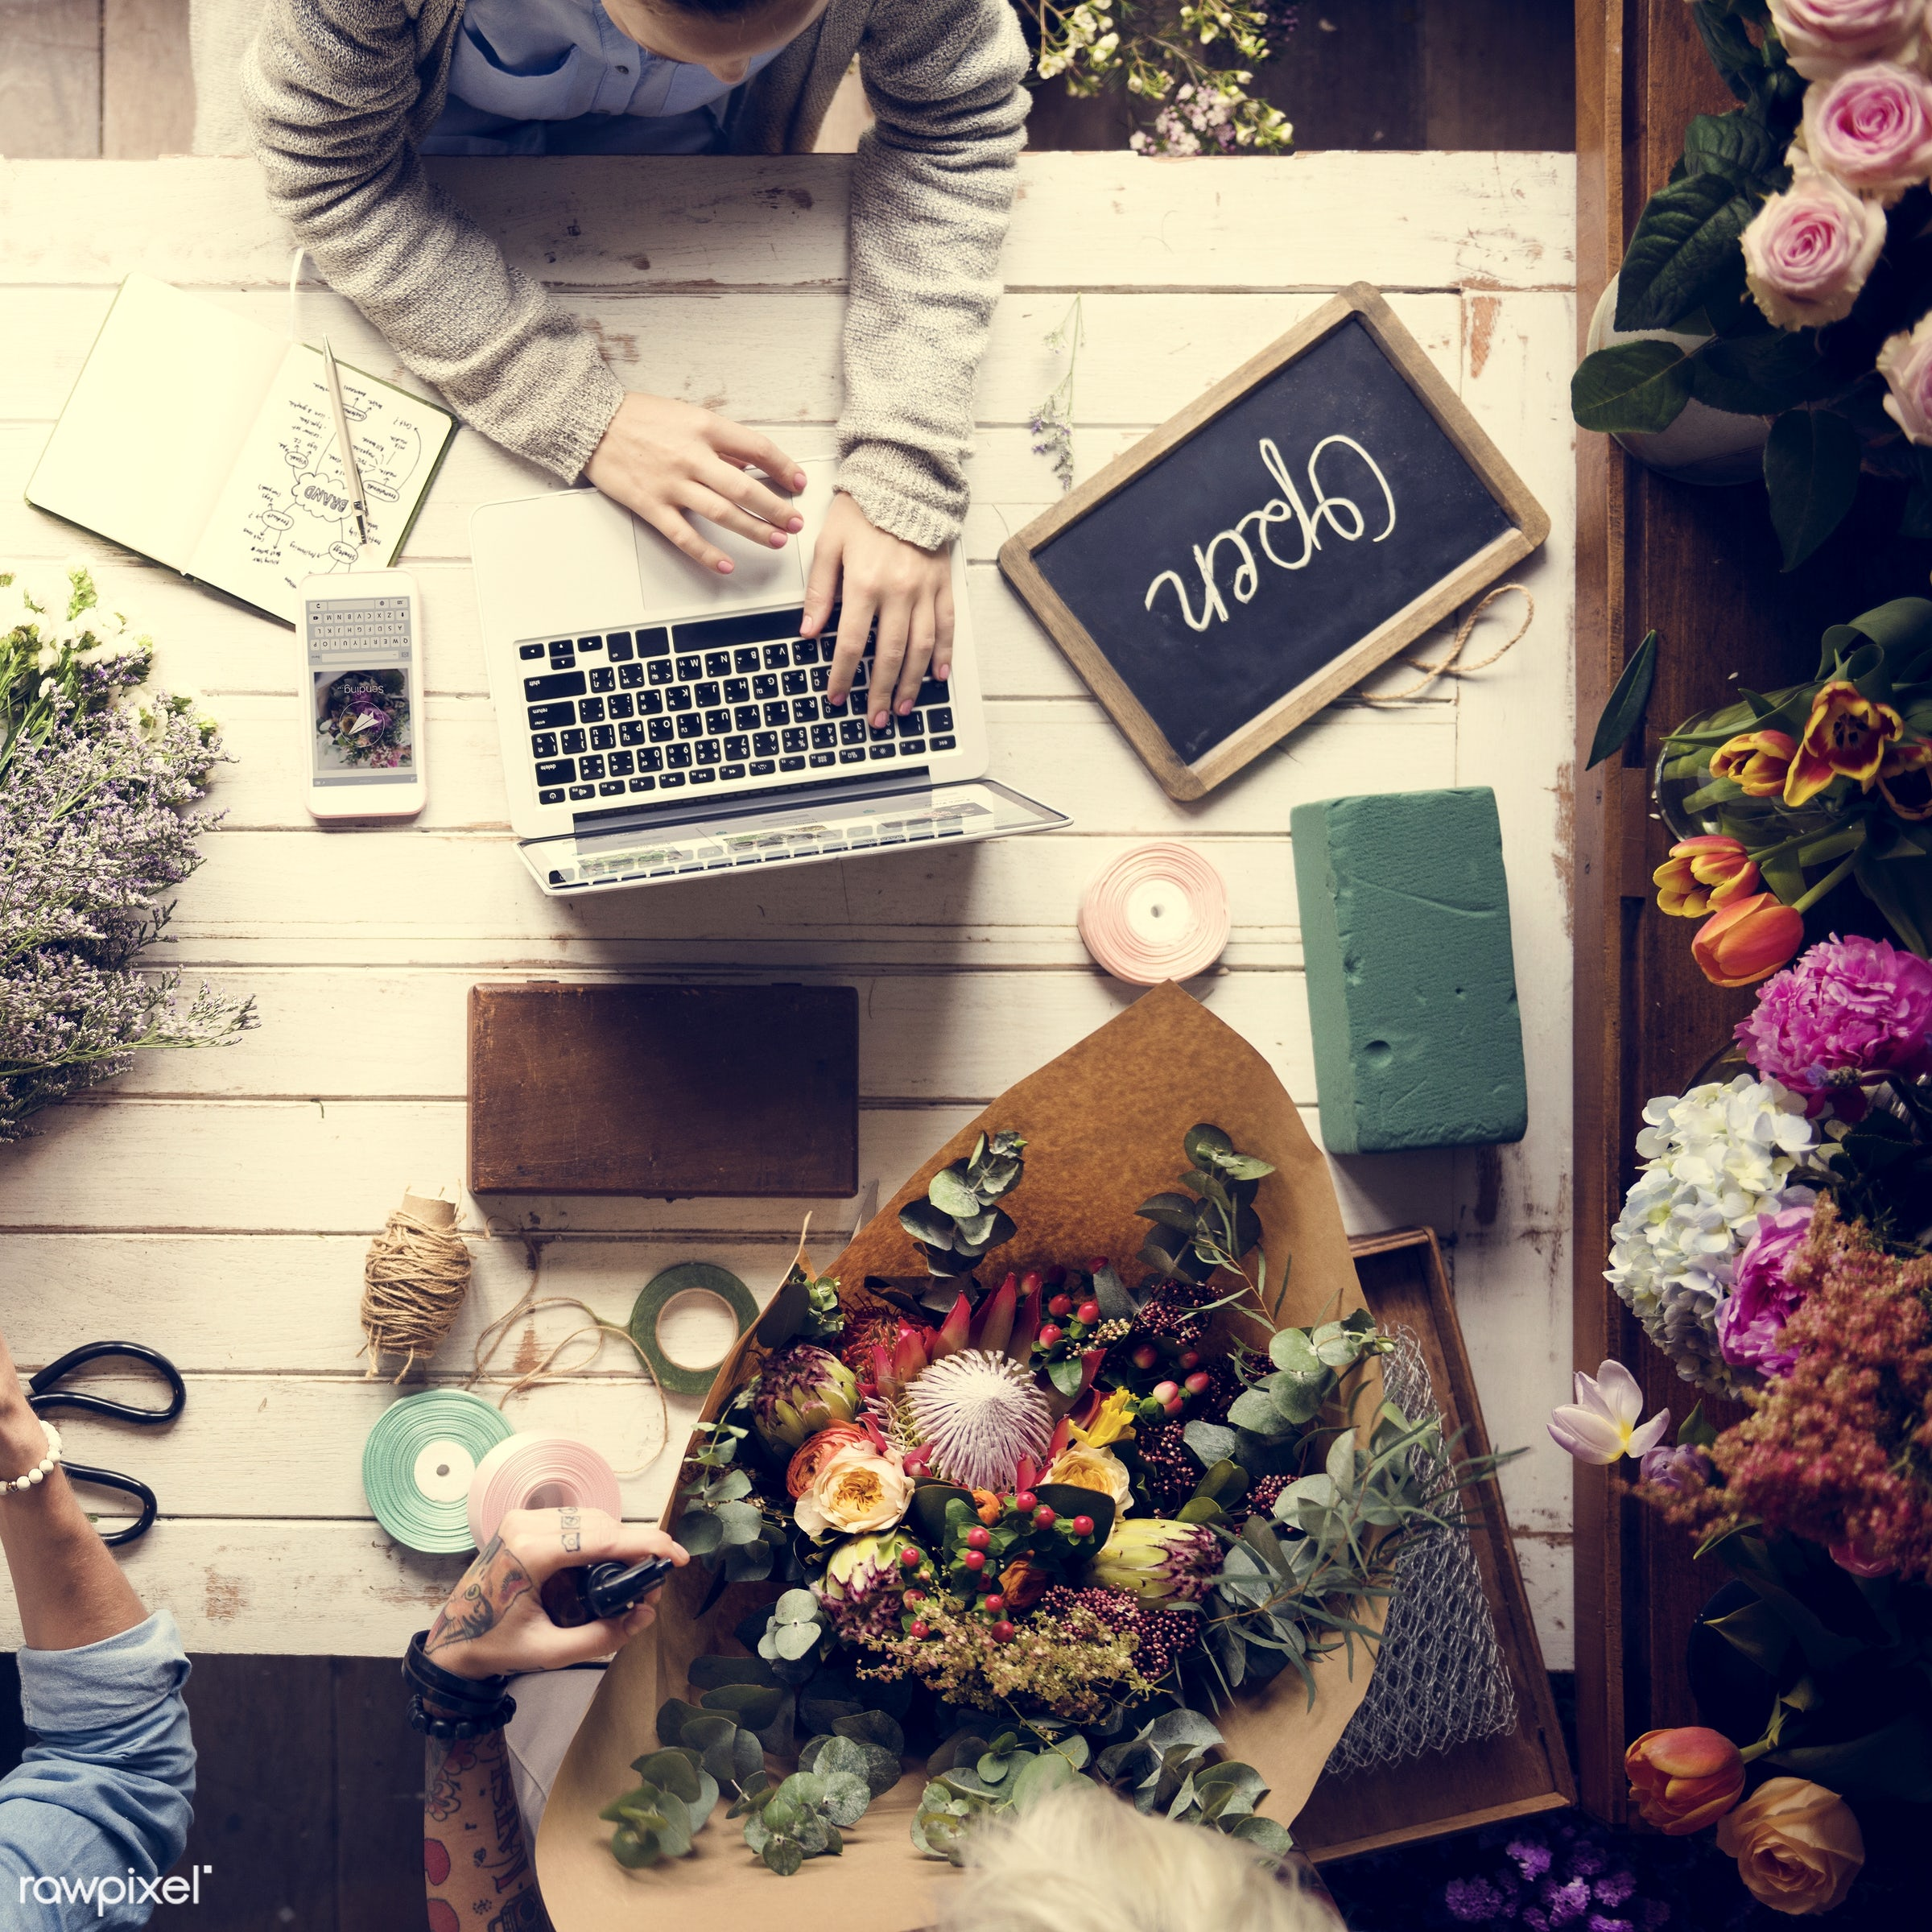 bouquet, using, craft, person, store, handicraft, equipment, people, rustic, self-employed, friends, woman, laptop, flower,...